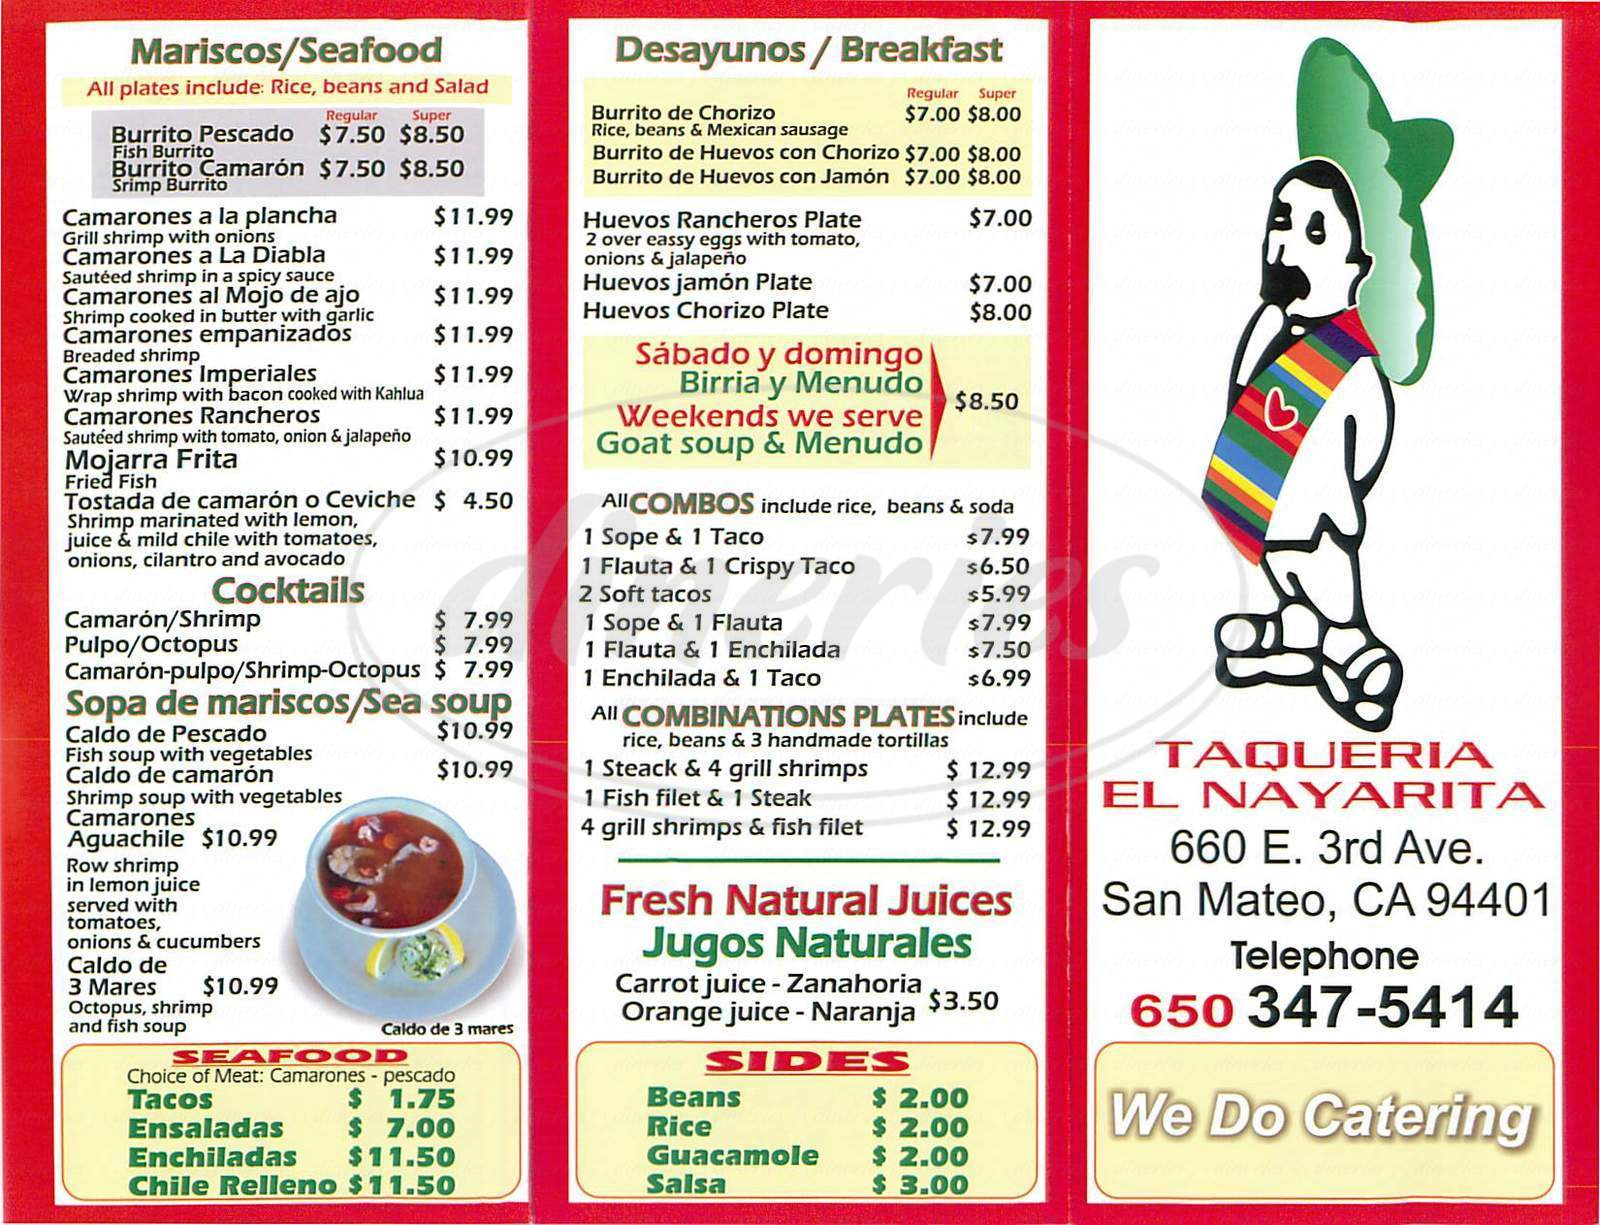 menu for Taqueria el Nayarita